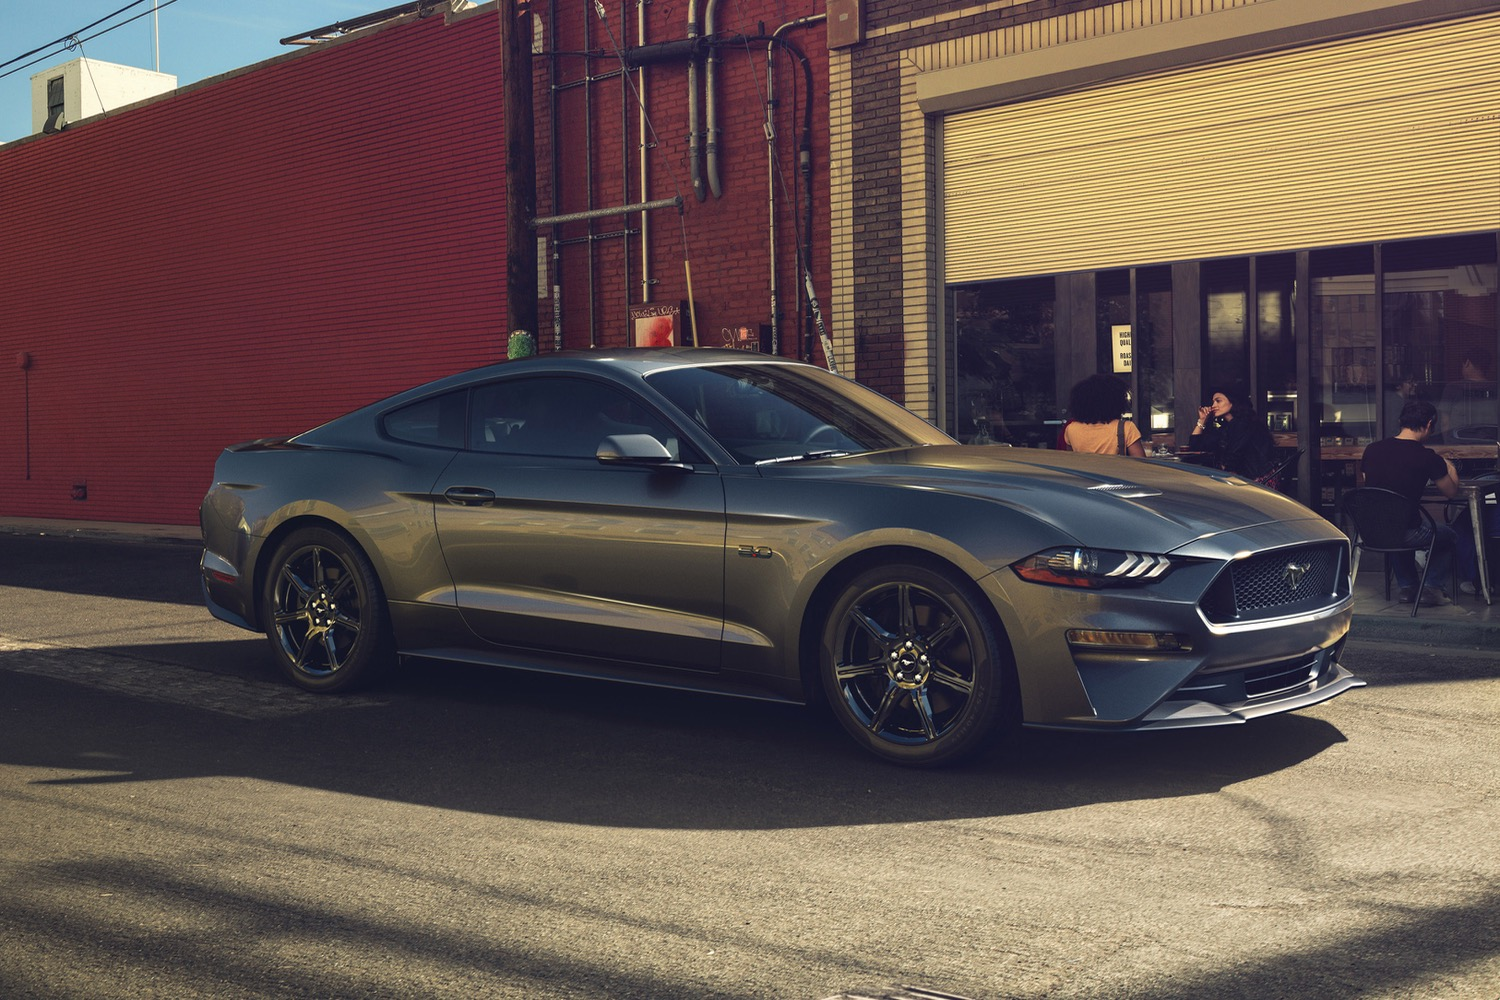 Your Neighbors Will Love The Ford 2018 Mustang Thanks To This Exhaust Silencer